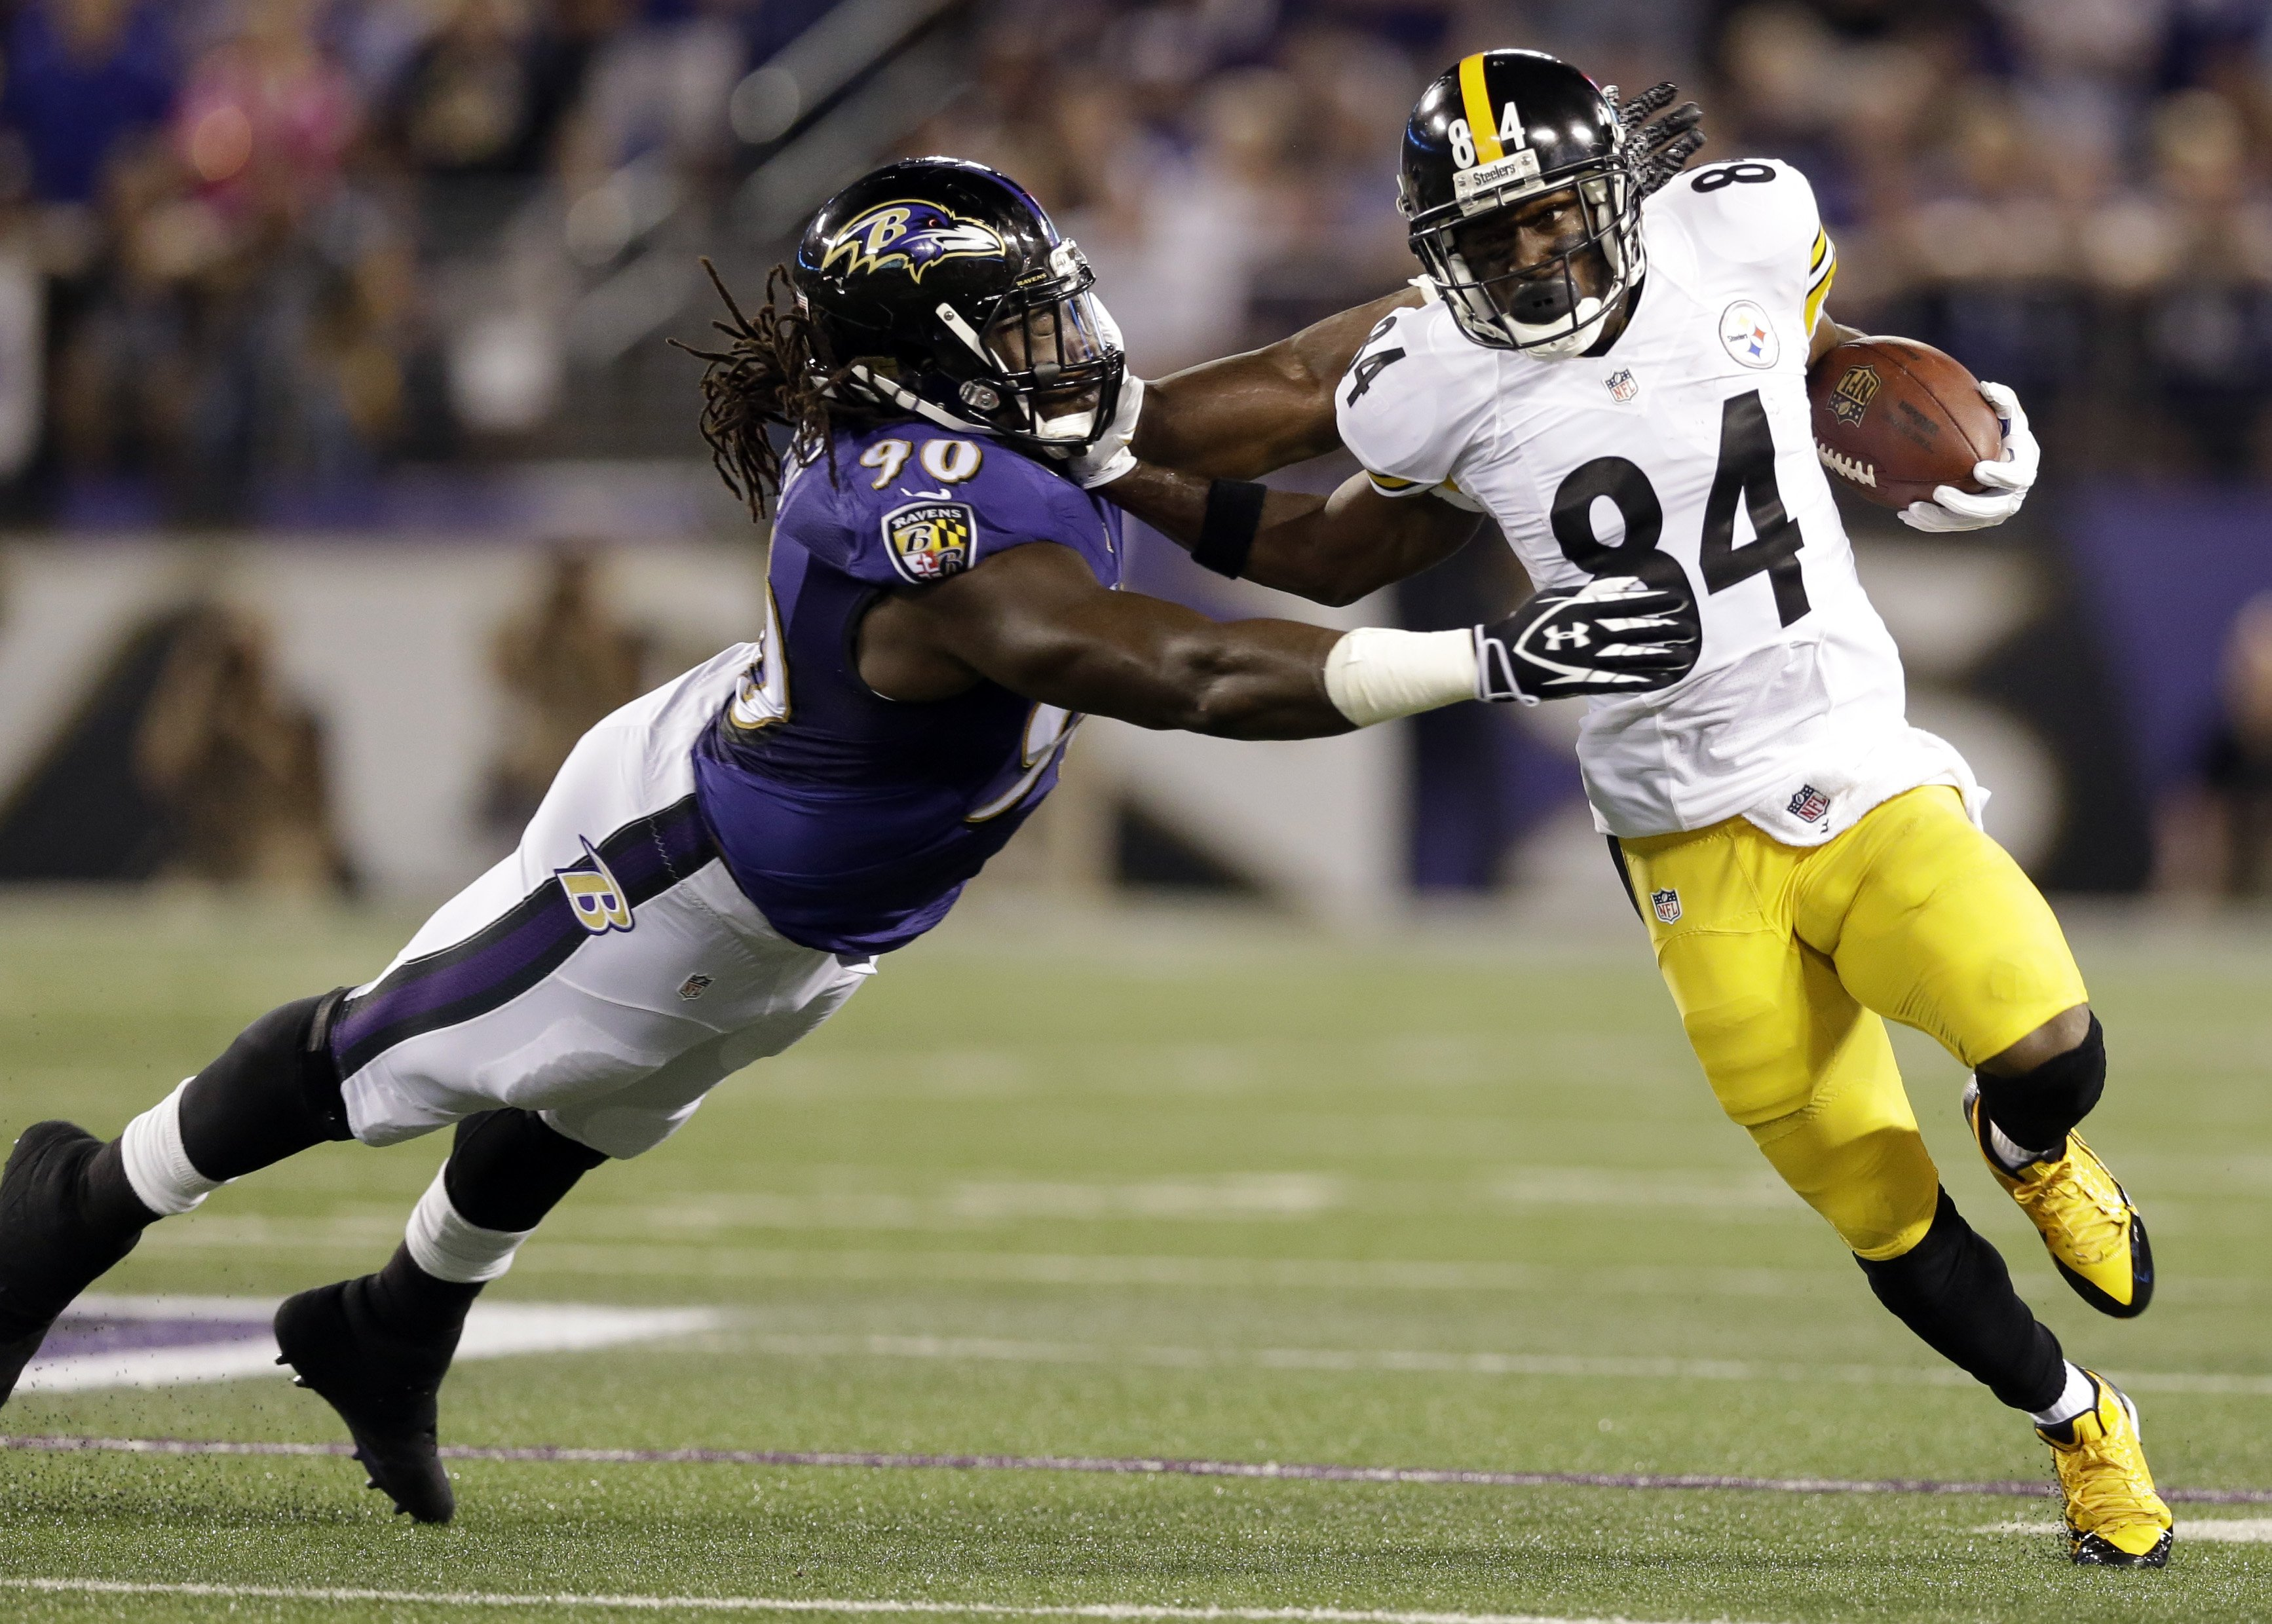 Baltimore Ravens linebacker Pernell McPhee is pushed away by Pittsburgh Steelers wide receiver Antonio Brown during the first half of an NFL football game on Sept. 11, 2014, in Baltimore.